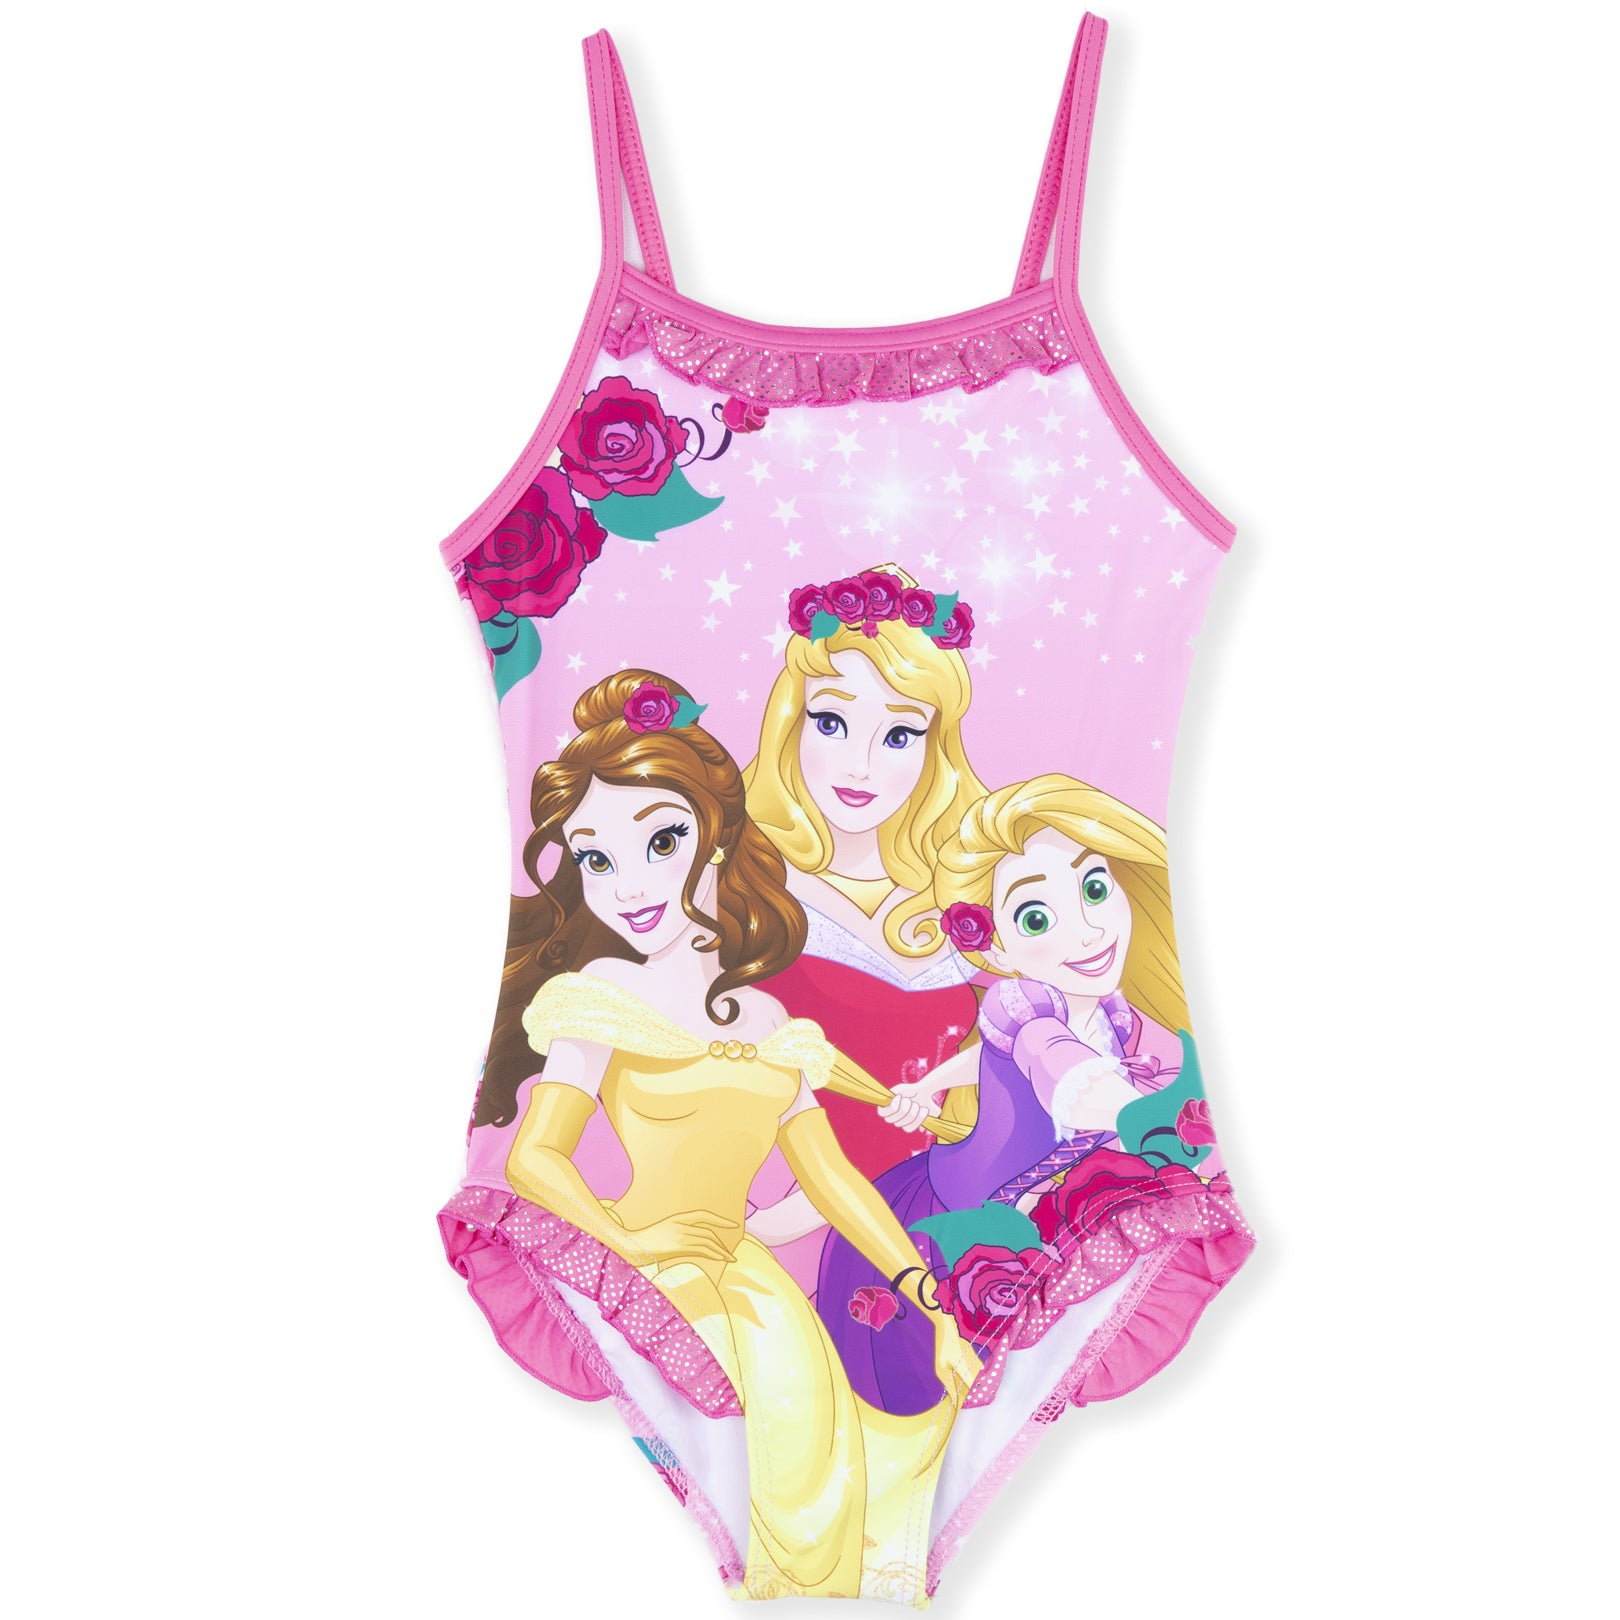 236793702a Disney Princess Girls One Piece Swimsuit, Swimming Costume 2-6 Years - Pink